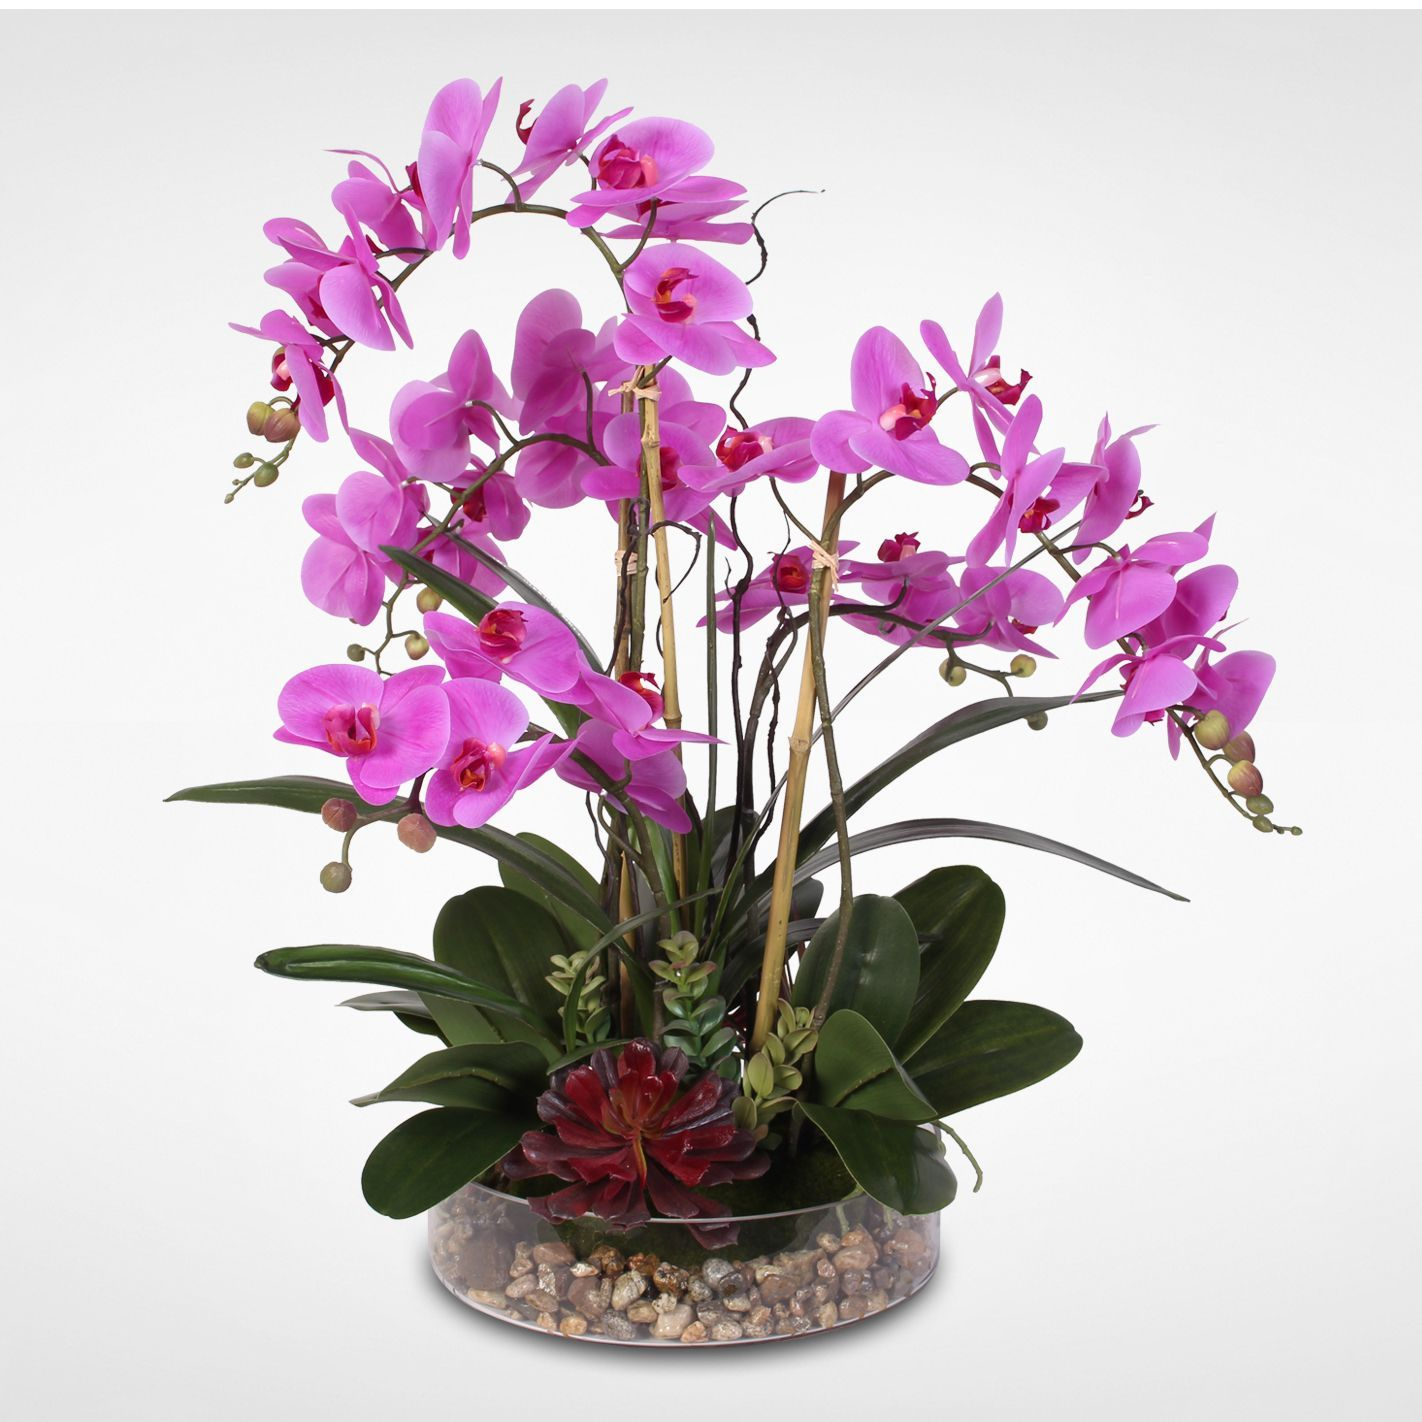 Real touch phalaenopsis orchid with succulents and rocks in glass